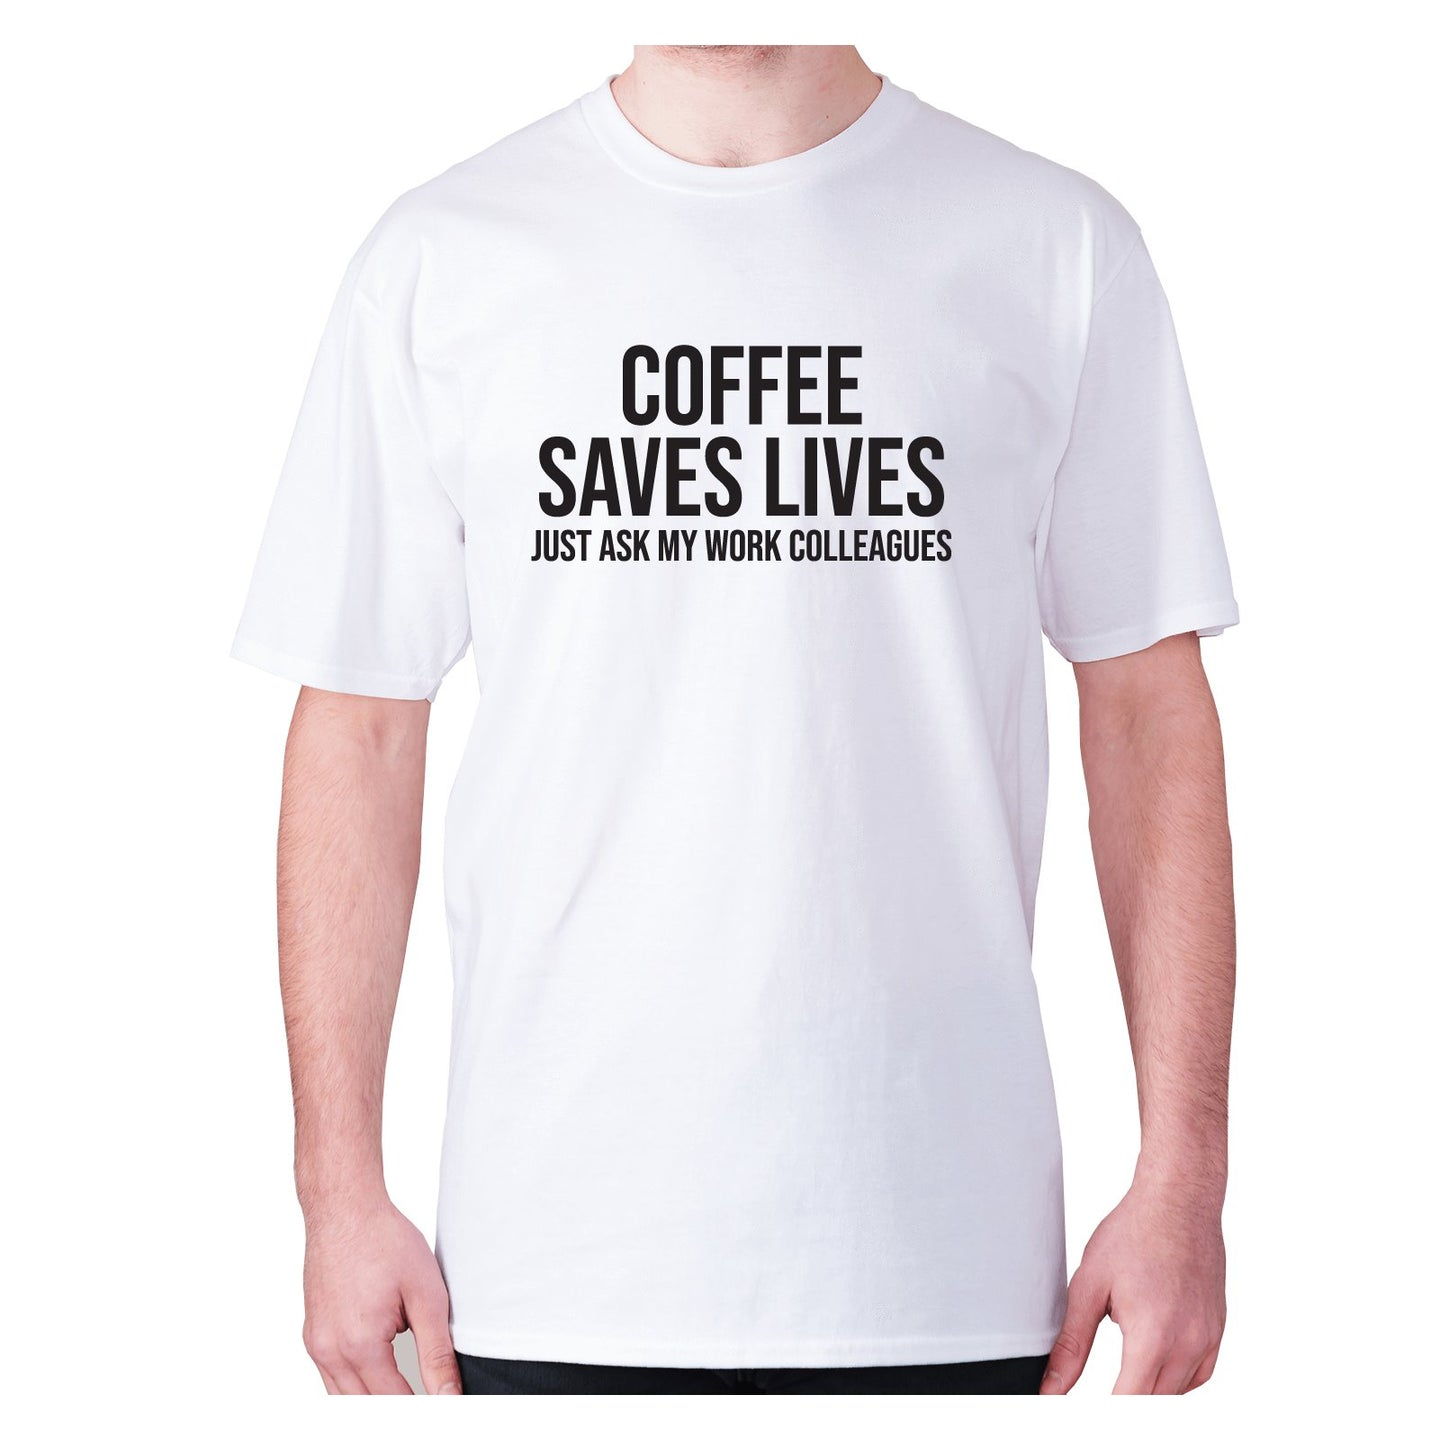 Coffee saves lives  just ask my work colleagues - men's premium t-shirt - White / S - Graphic Gear